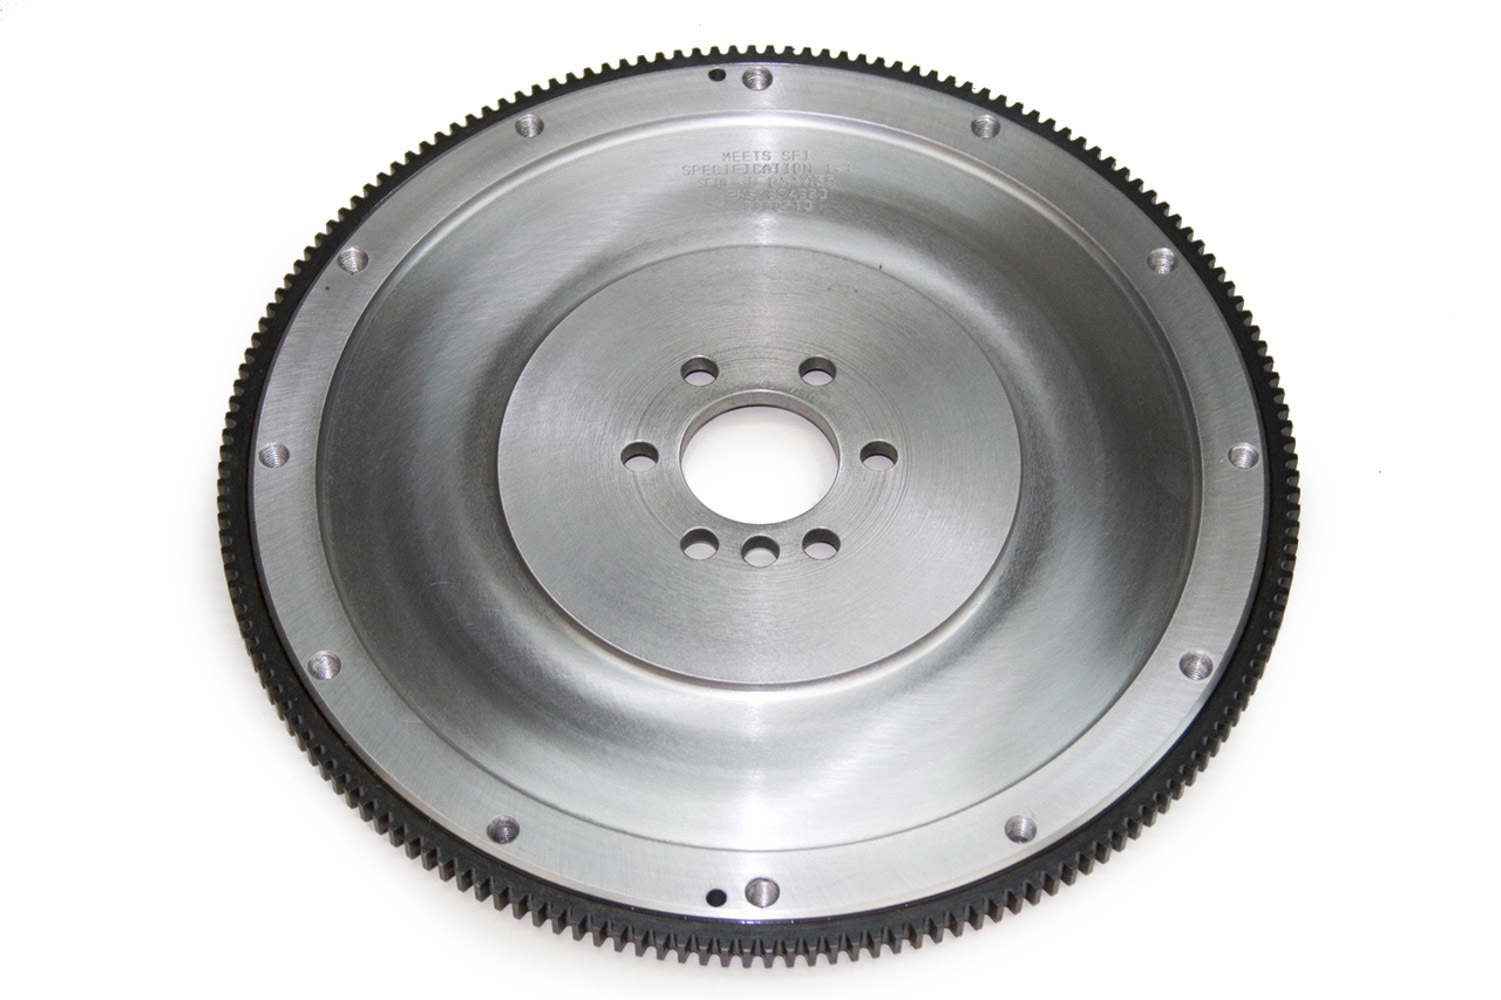 PRW Industries 1634680 Flywheel, 168 Tooth, 24.45 lb, SFI 1.1, Steel, Internal Balance, 1 Piece Seal, GM LS-Series, Each